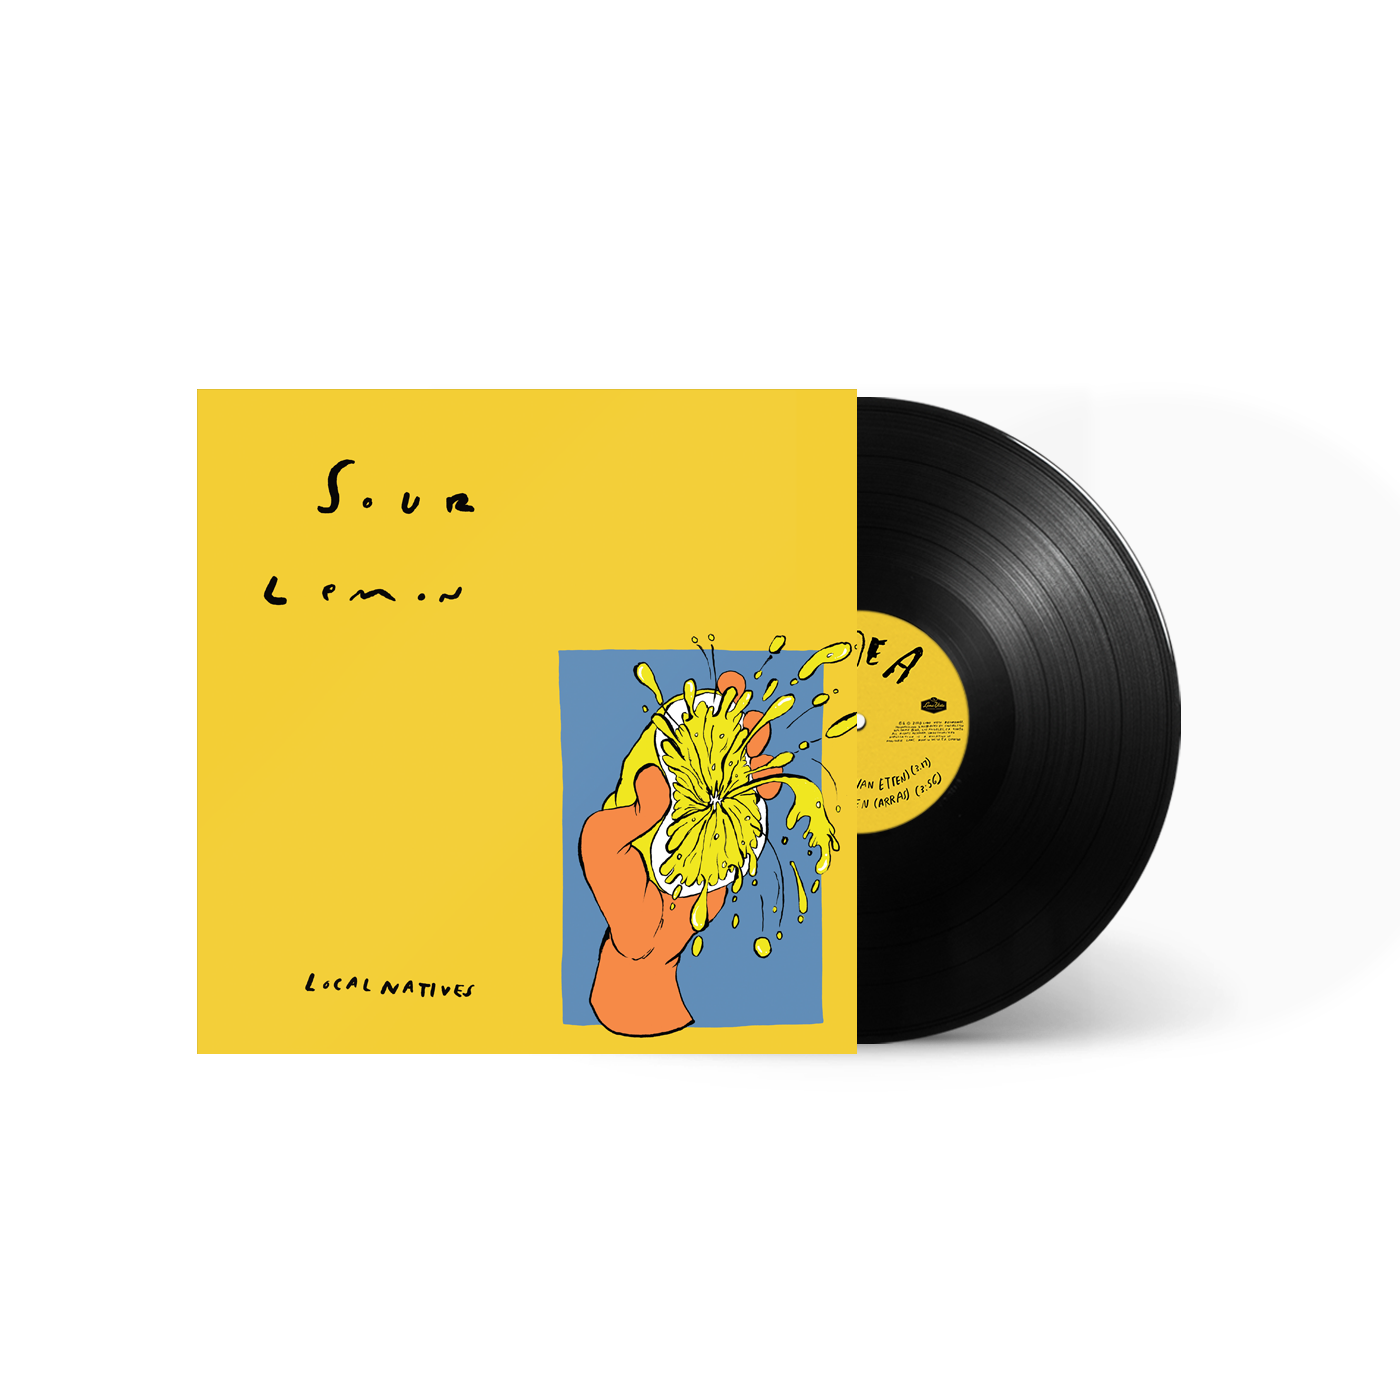 "Local Natives - Sour Lemon Limited Edition 10"" Vinyl Record EP"